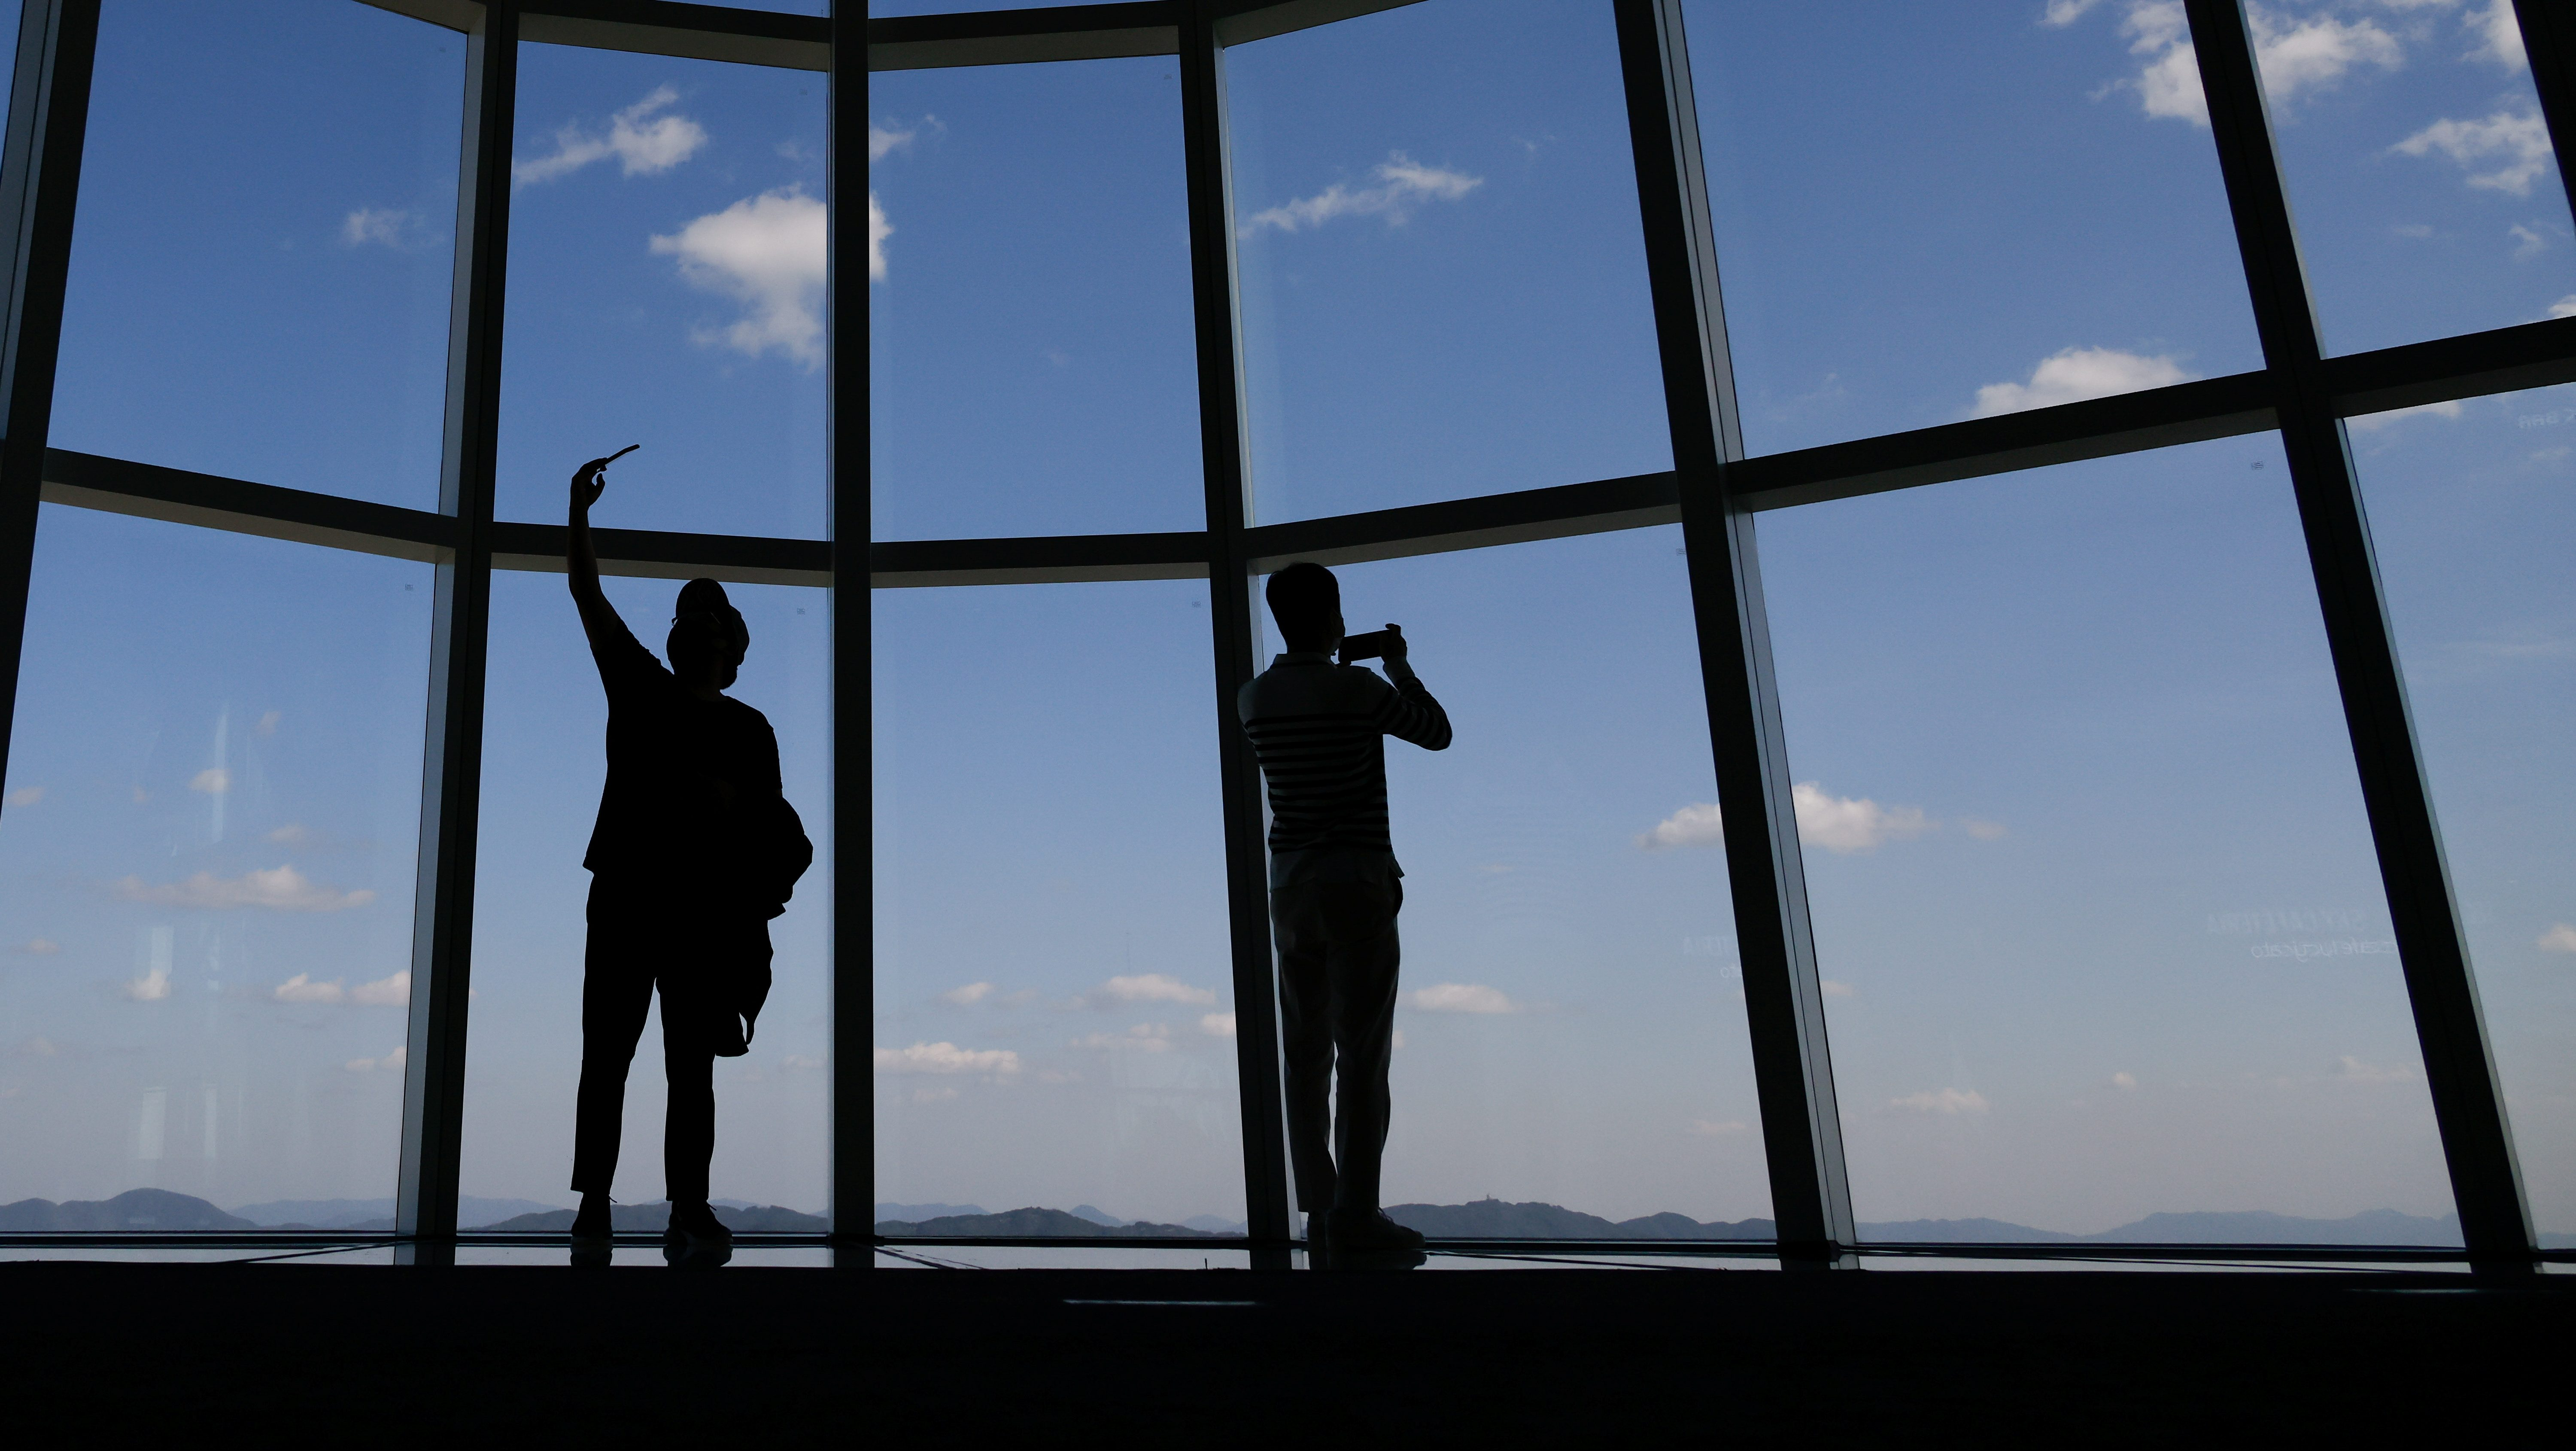 Visitors take a selfie at the Seoul Sky Observatory in Seoul, South Korea